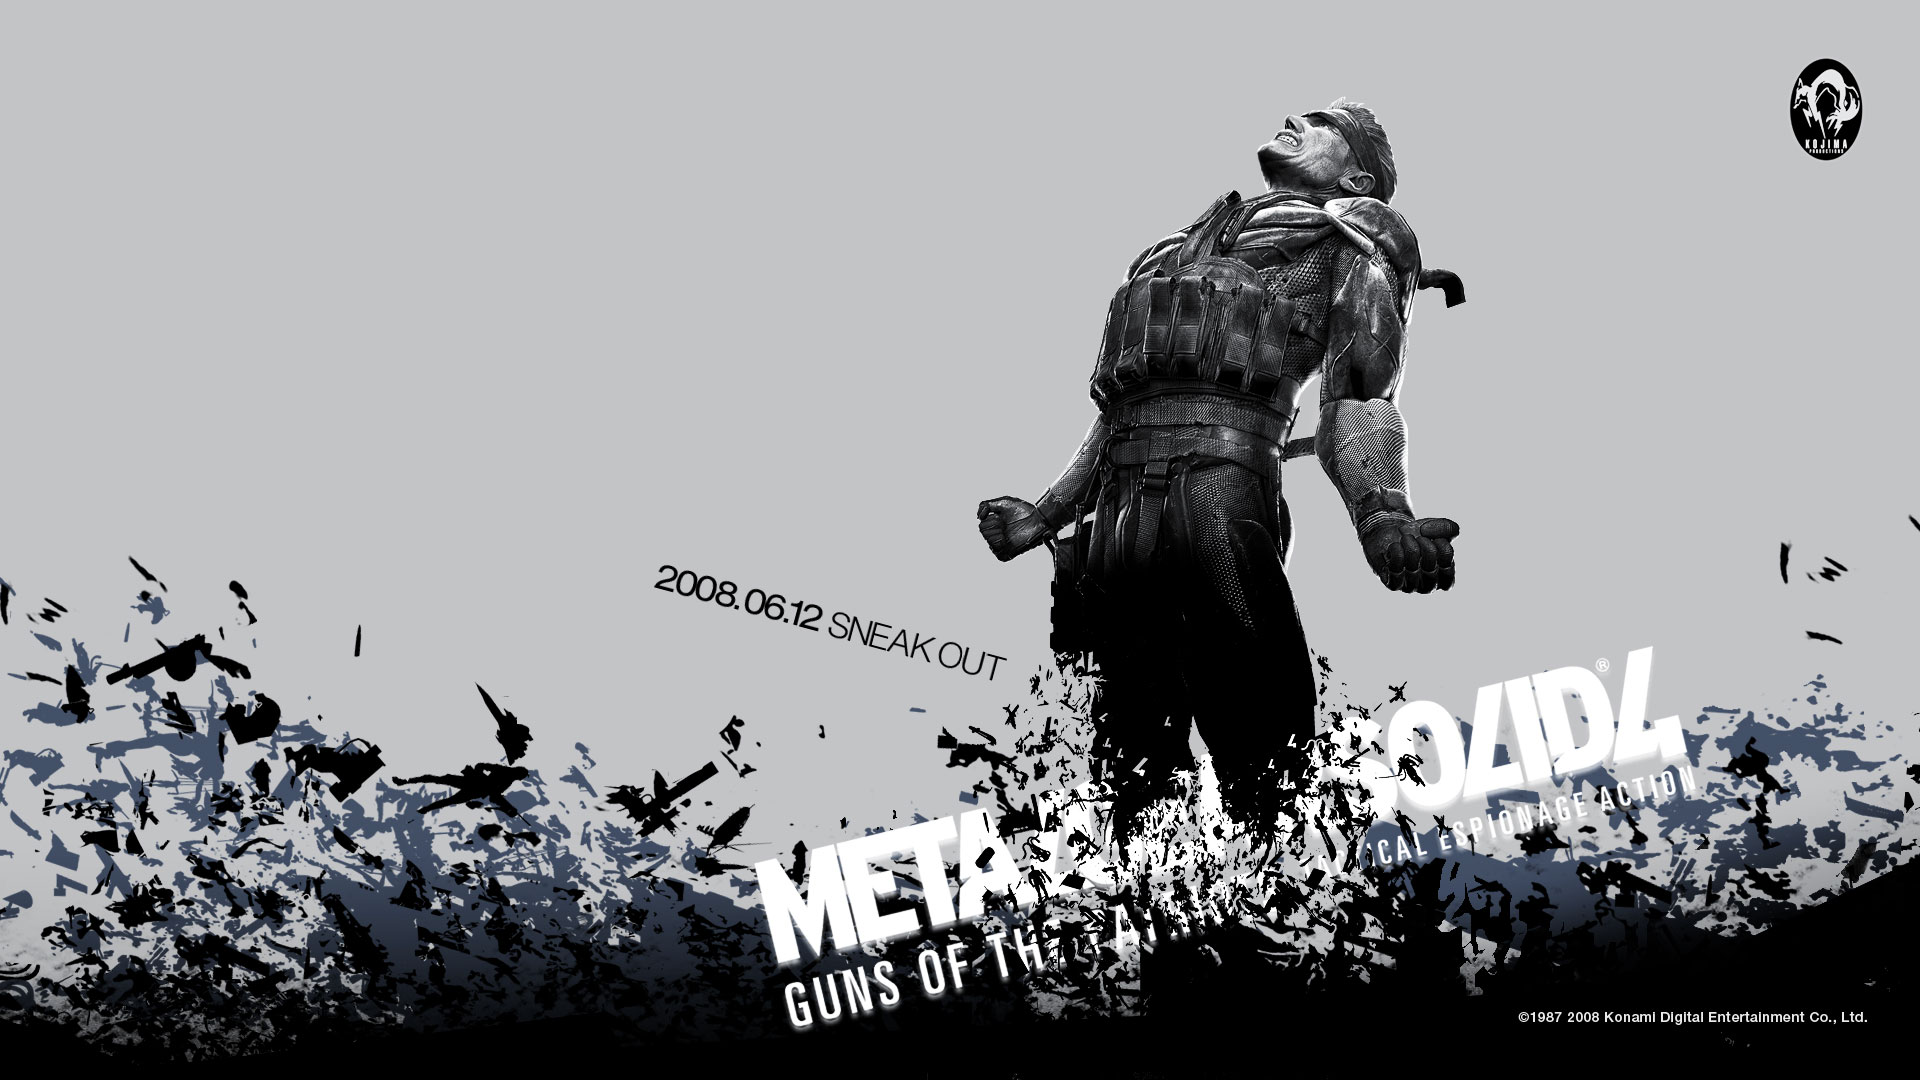 Metal Gear Solid 4 wallpapers « Metal gear solid 4 fan's blog